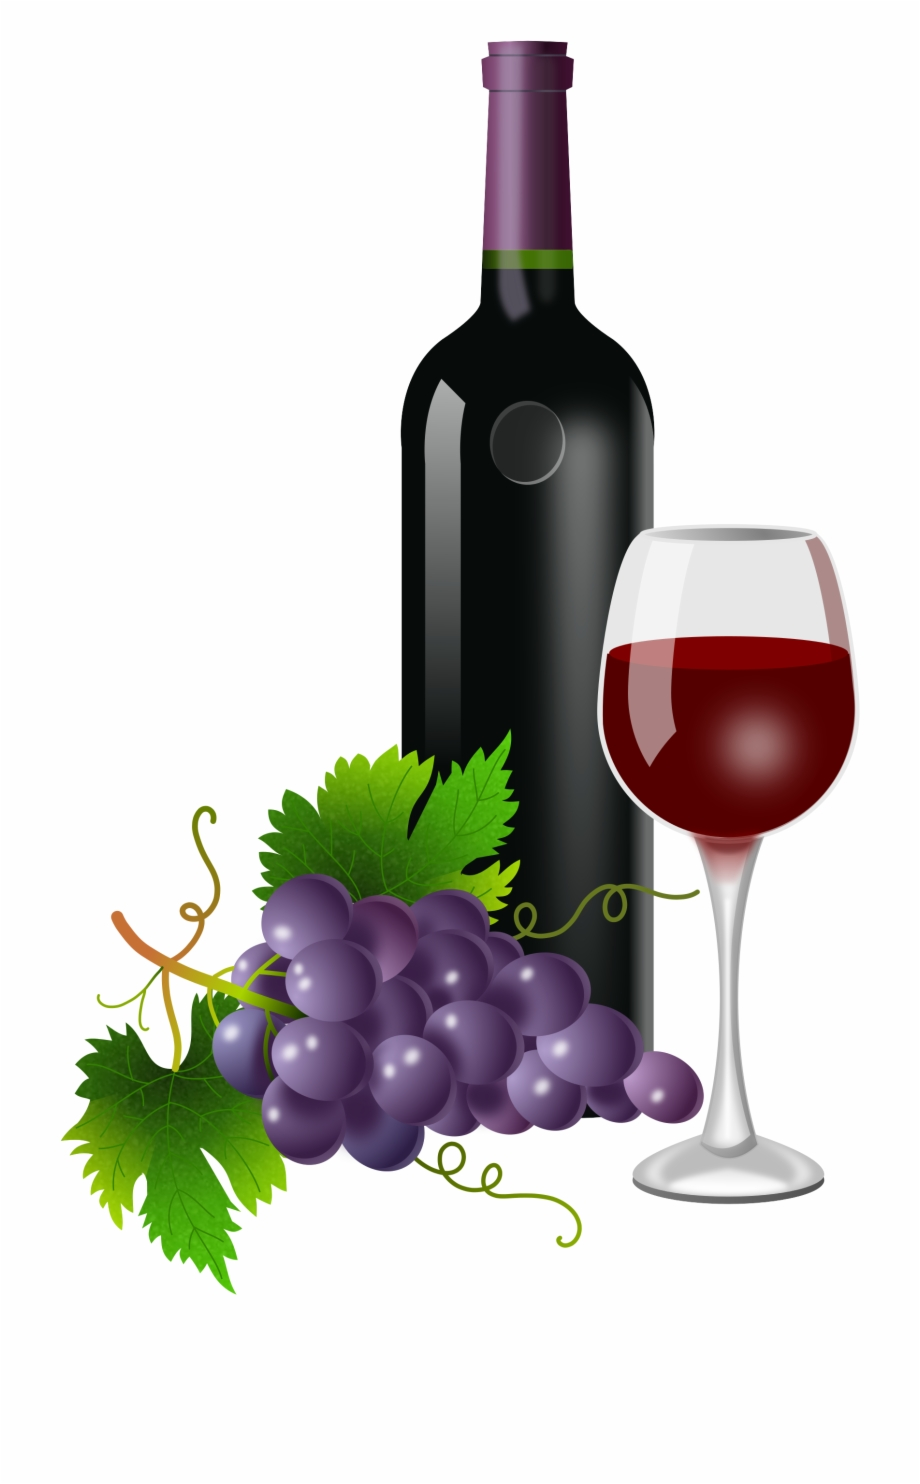 Clipart wine bottle and glass svg royalty free library Png Wine Bottle And Glass - Wine And Grapes Png Free PNG Images ... svg royalty free library